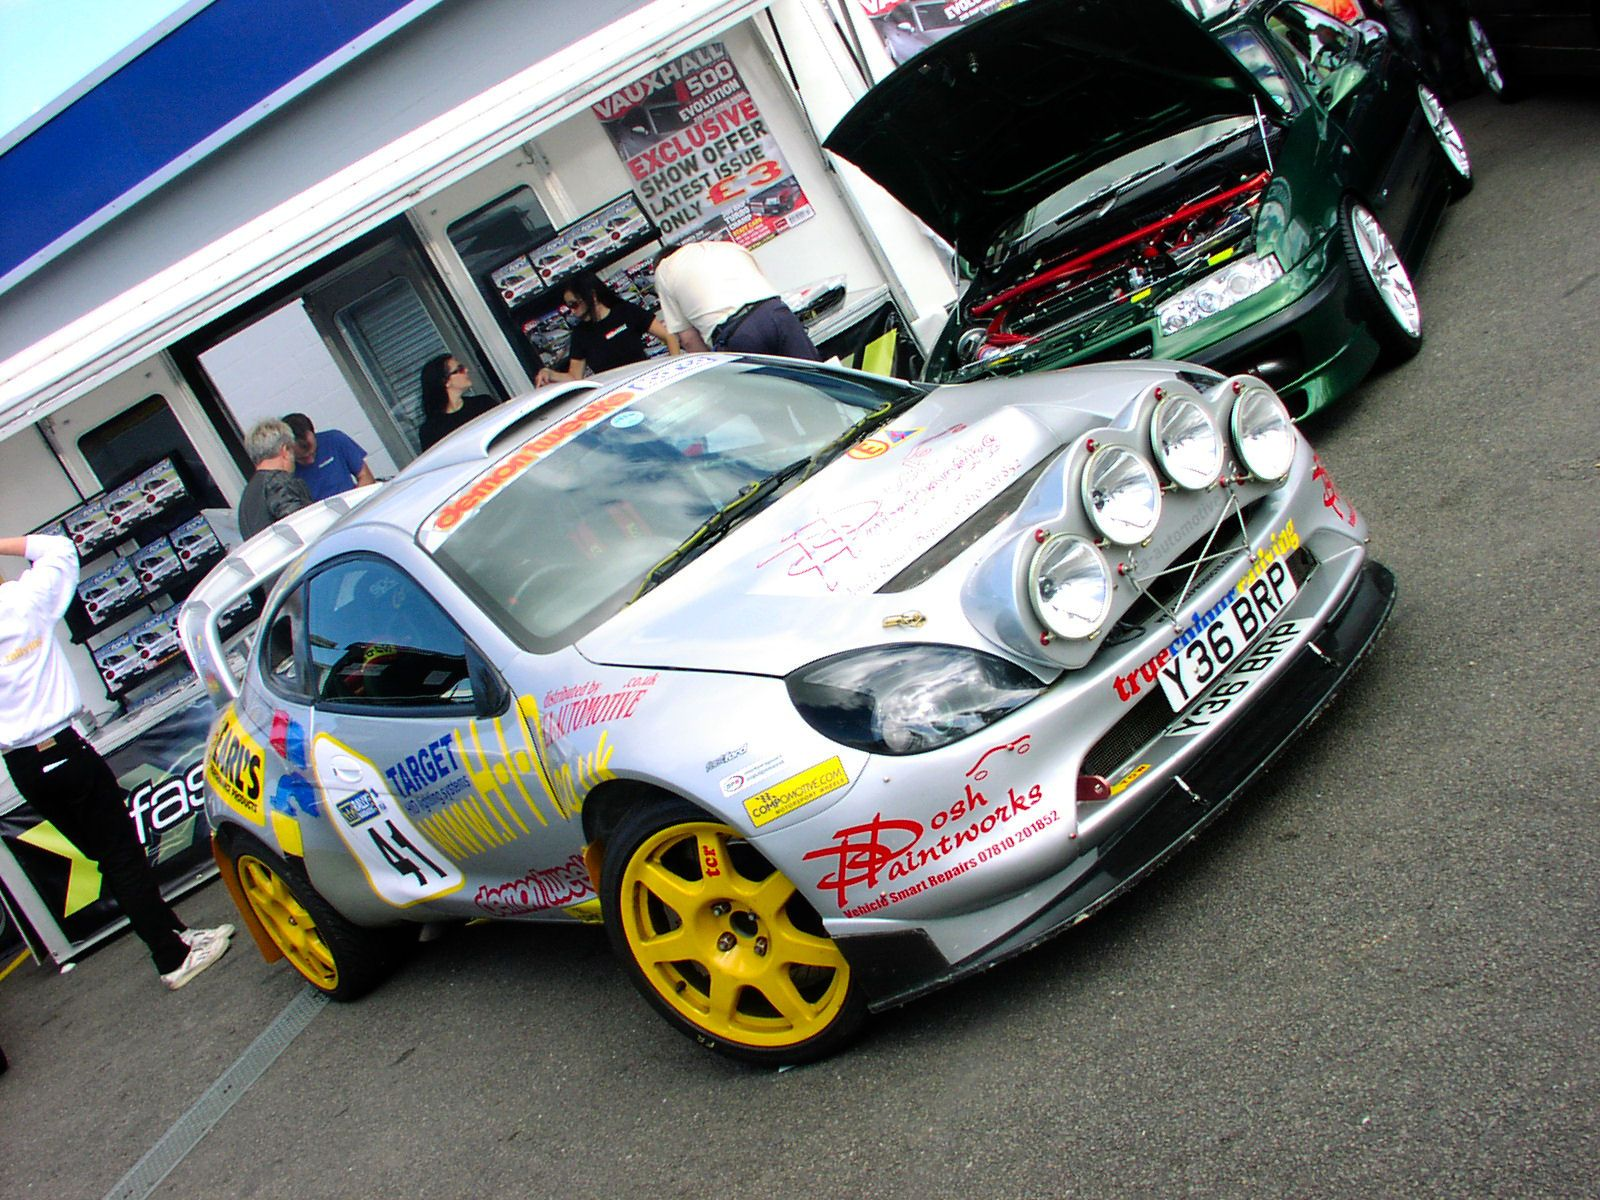 Ford Puma Kit Car  Motorsport  Pinterest  Ford Kit cars and Search